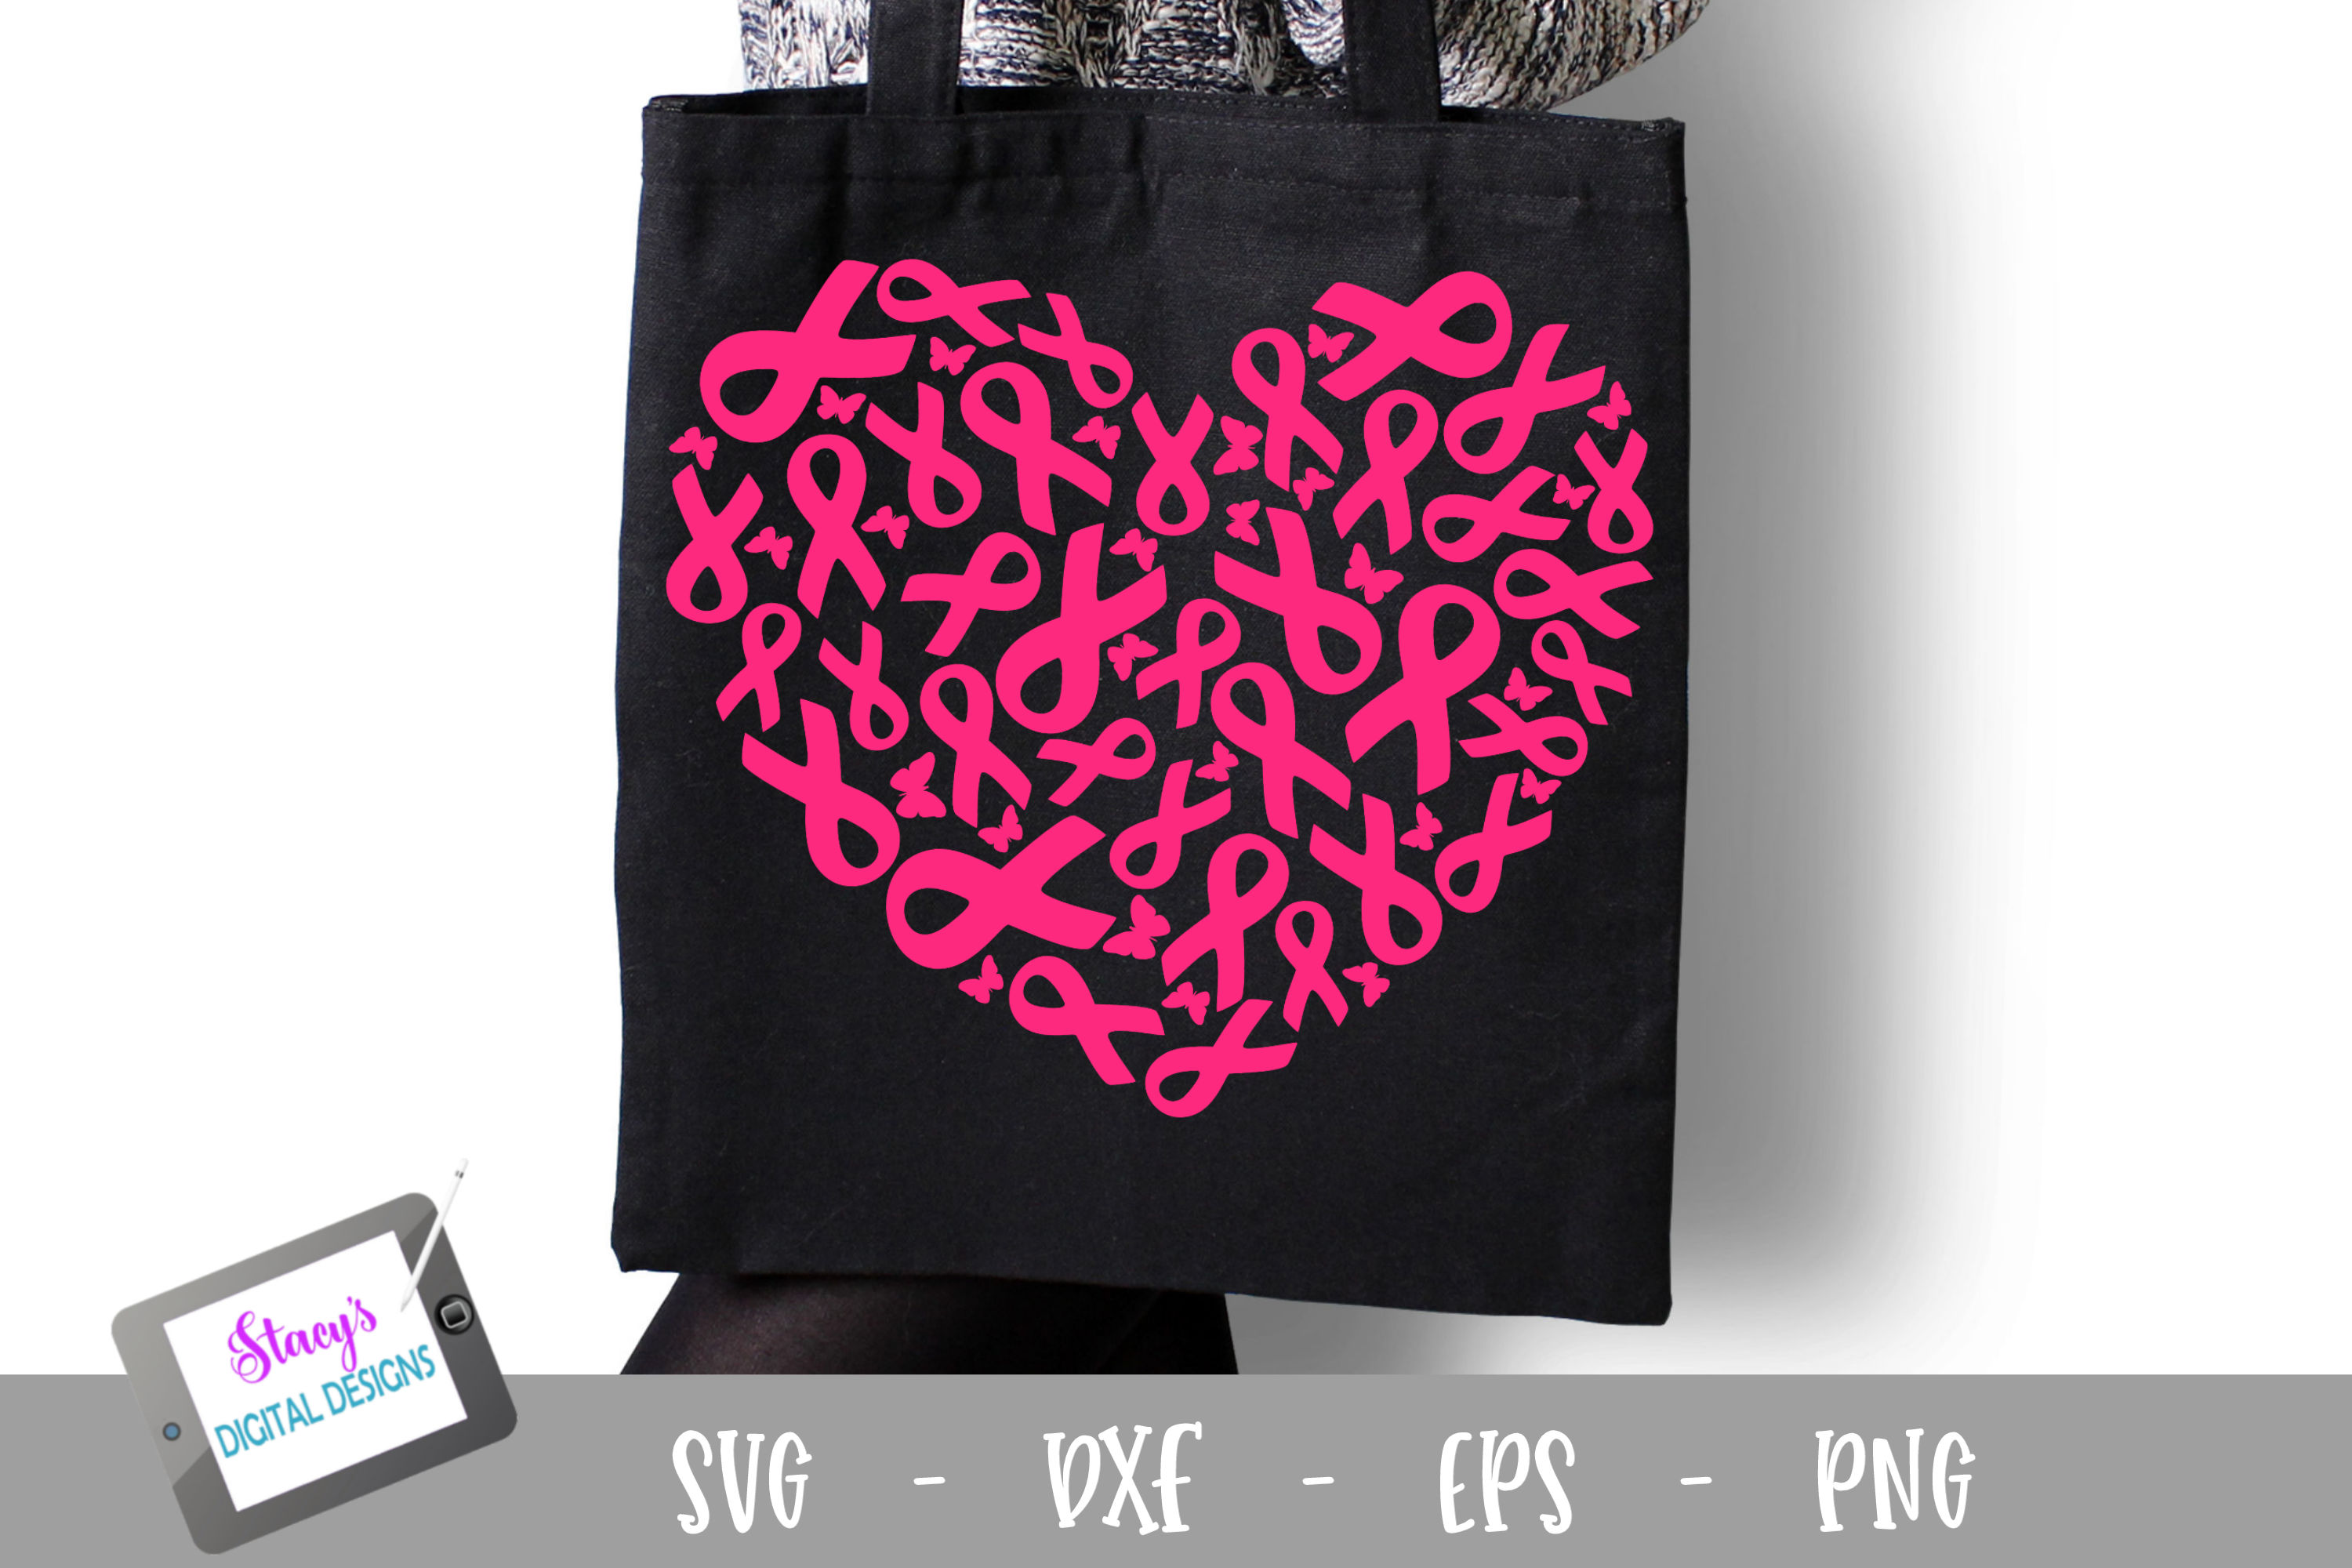 Download Free Breast Cancer Awareness Graphic By Stacysdigitaldesigns for Cricut Explore, Silhouette and other cutting machines.